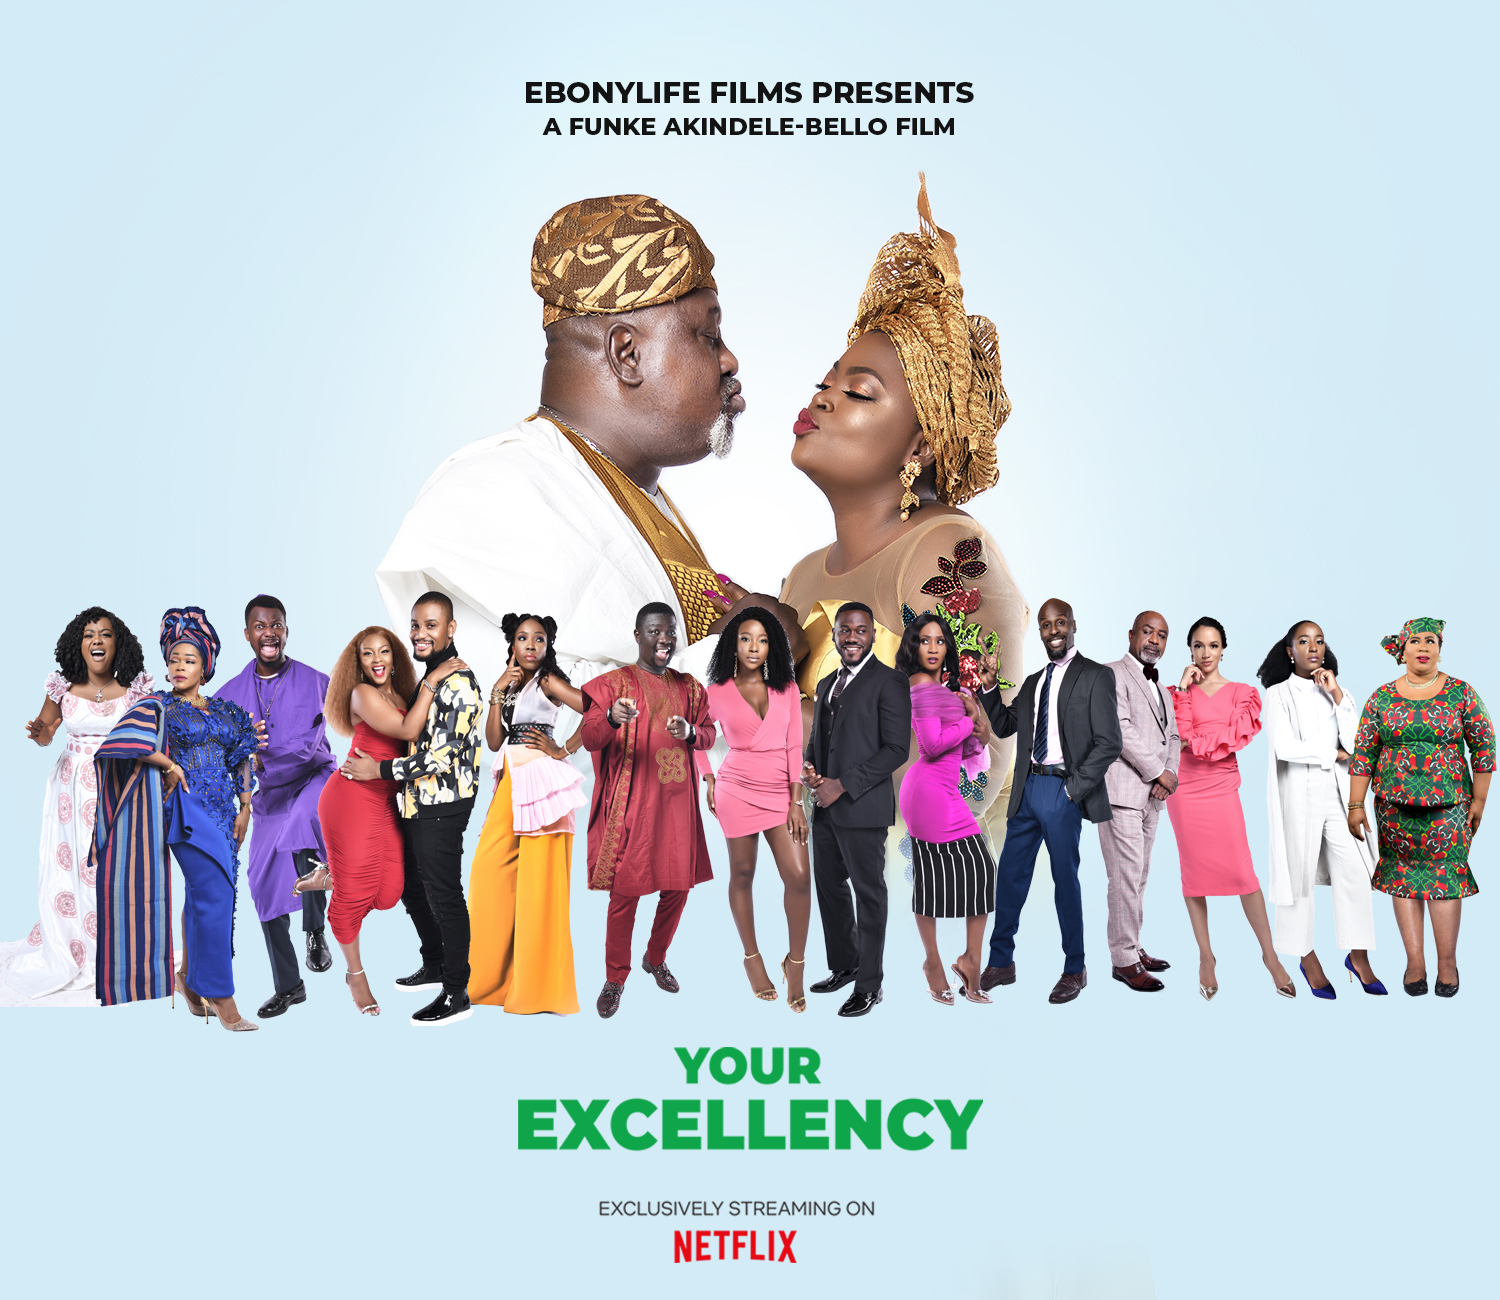 Get Ready to have a Good Movie Time as Ebonylife Films debuts its  Blockbuster Movie, Your Excellency on Netflix   July 10   BellaNaija